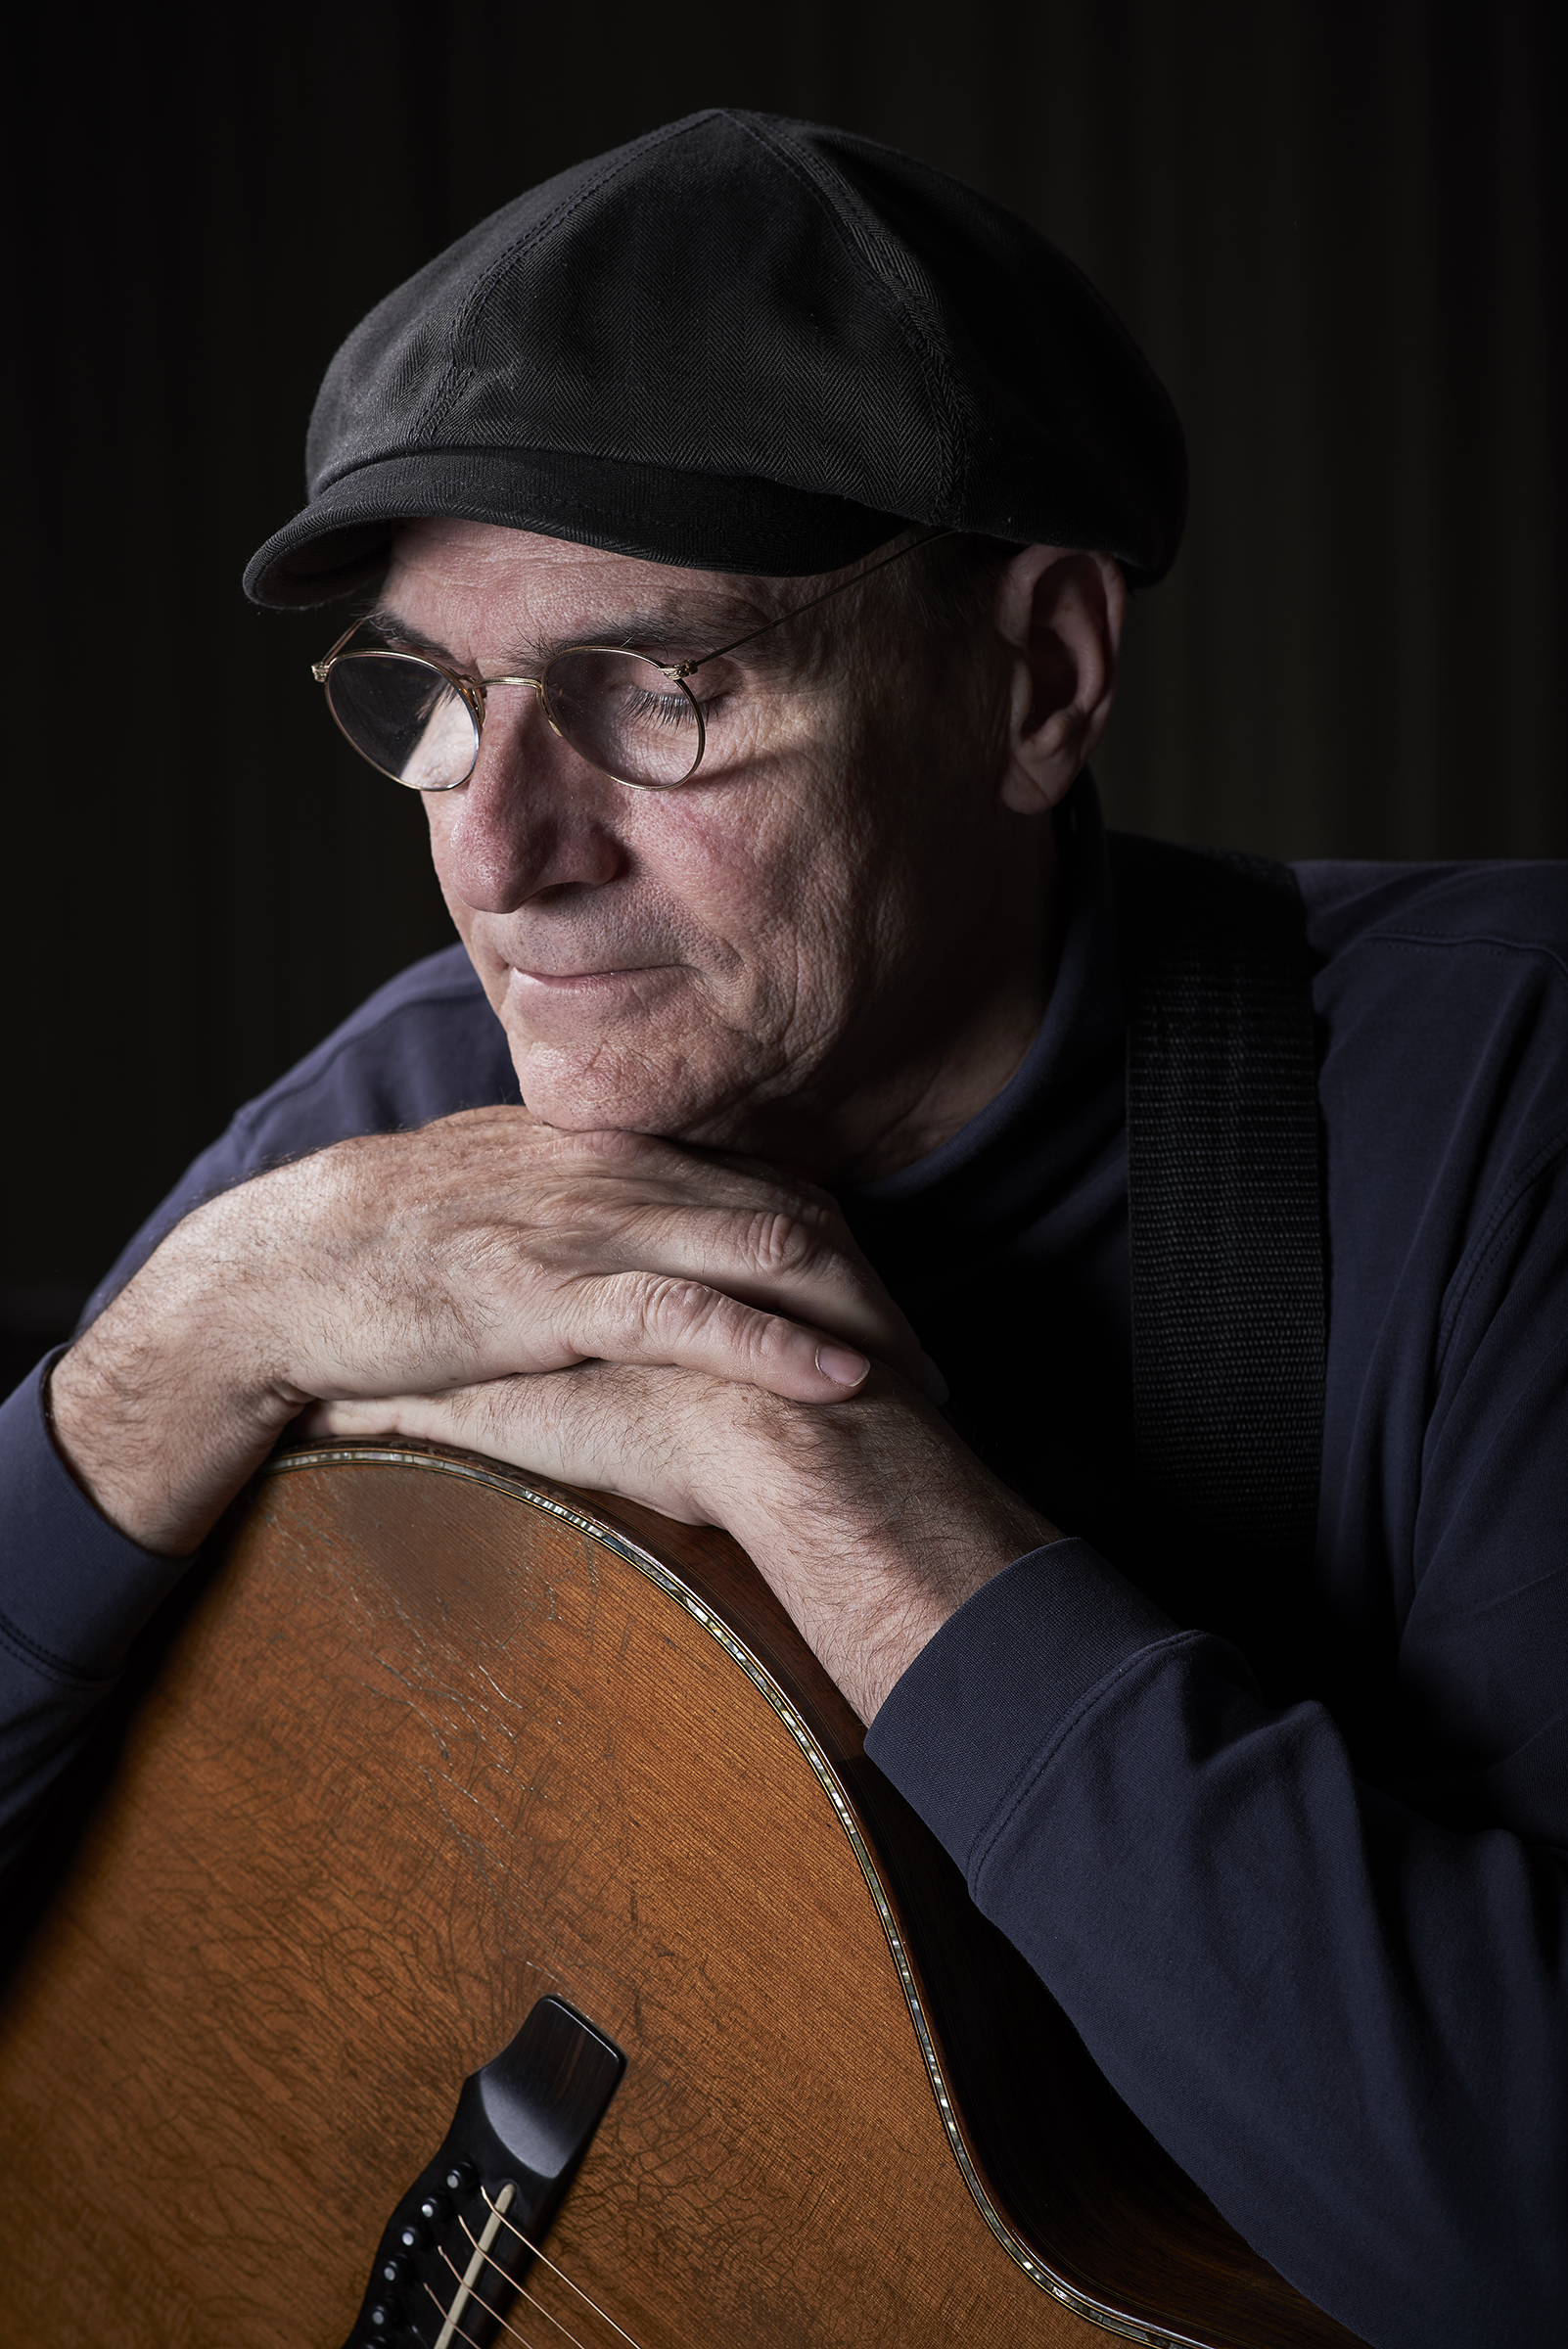 At 71, James Taylor looks back—and settles in for an encore